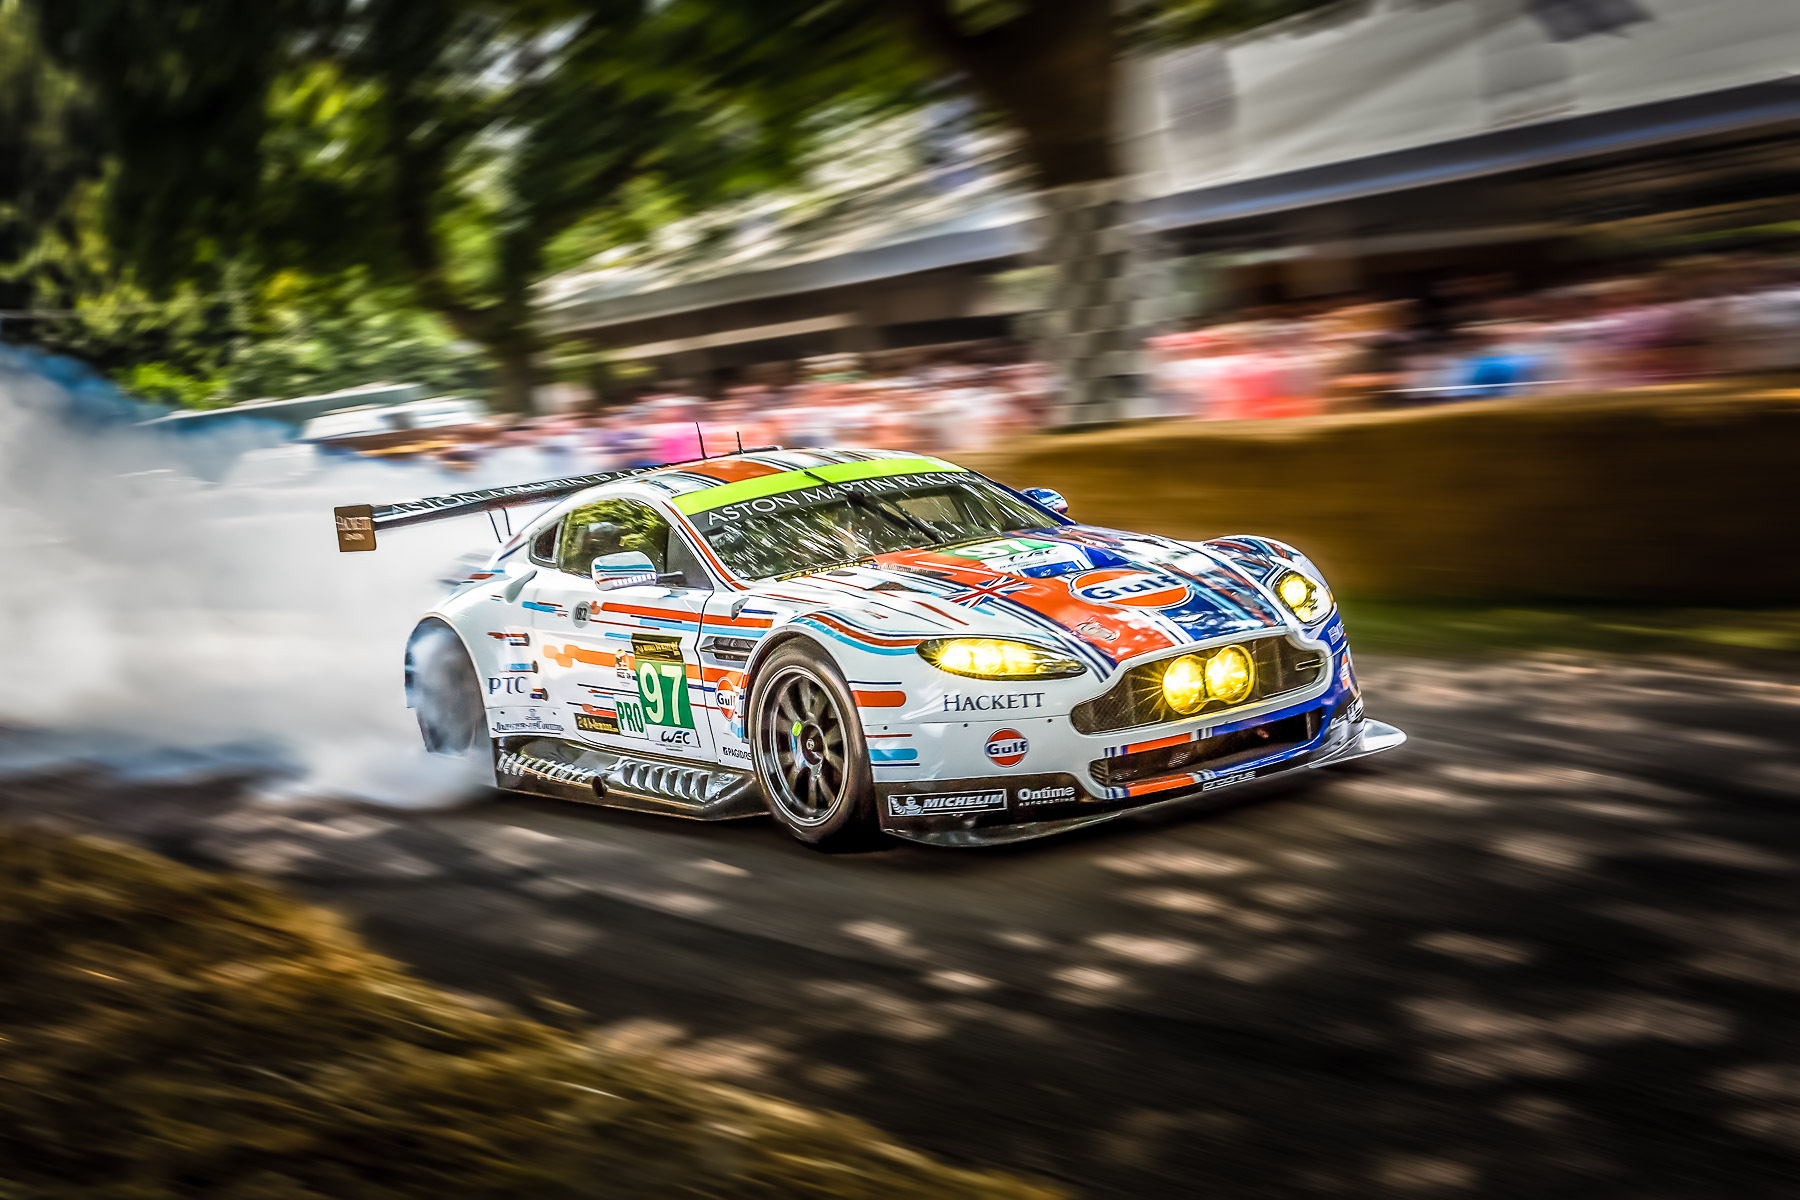 1goodwood_2012_9197_b.jpg